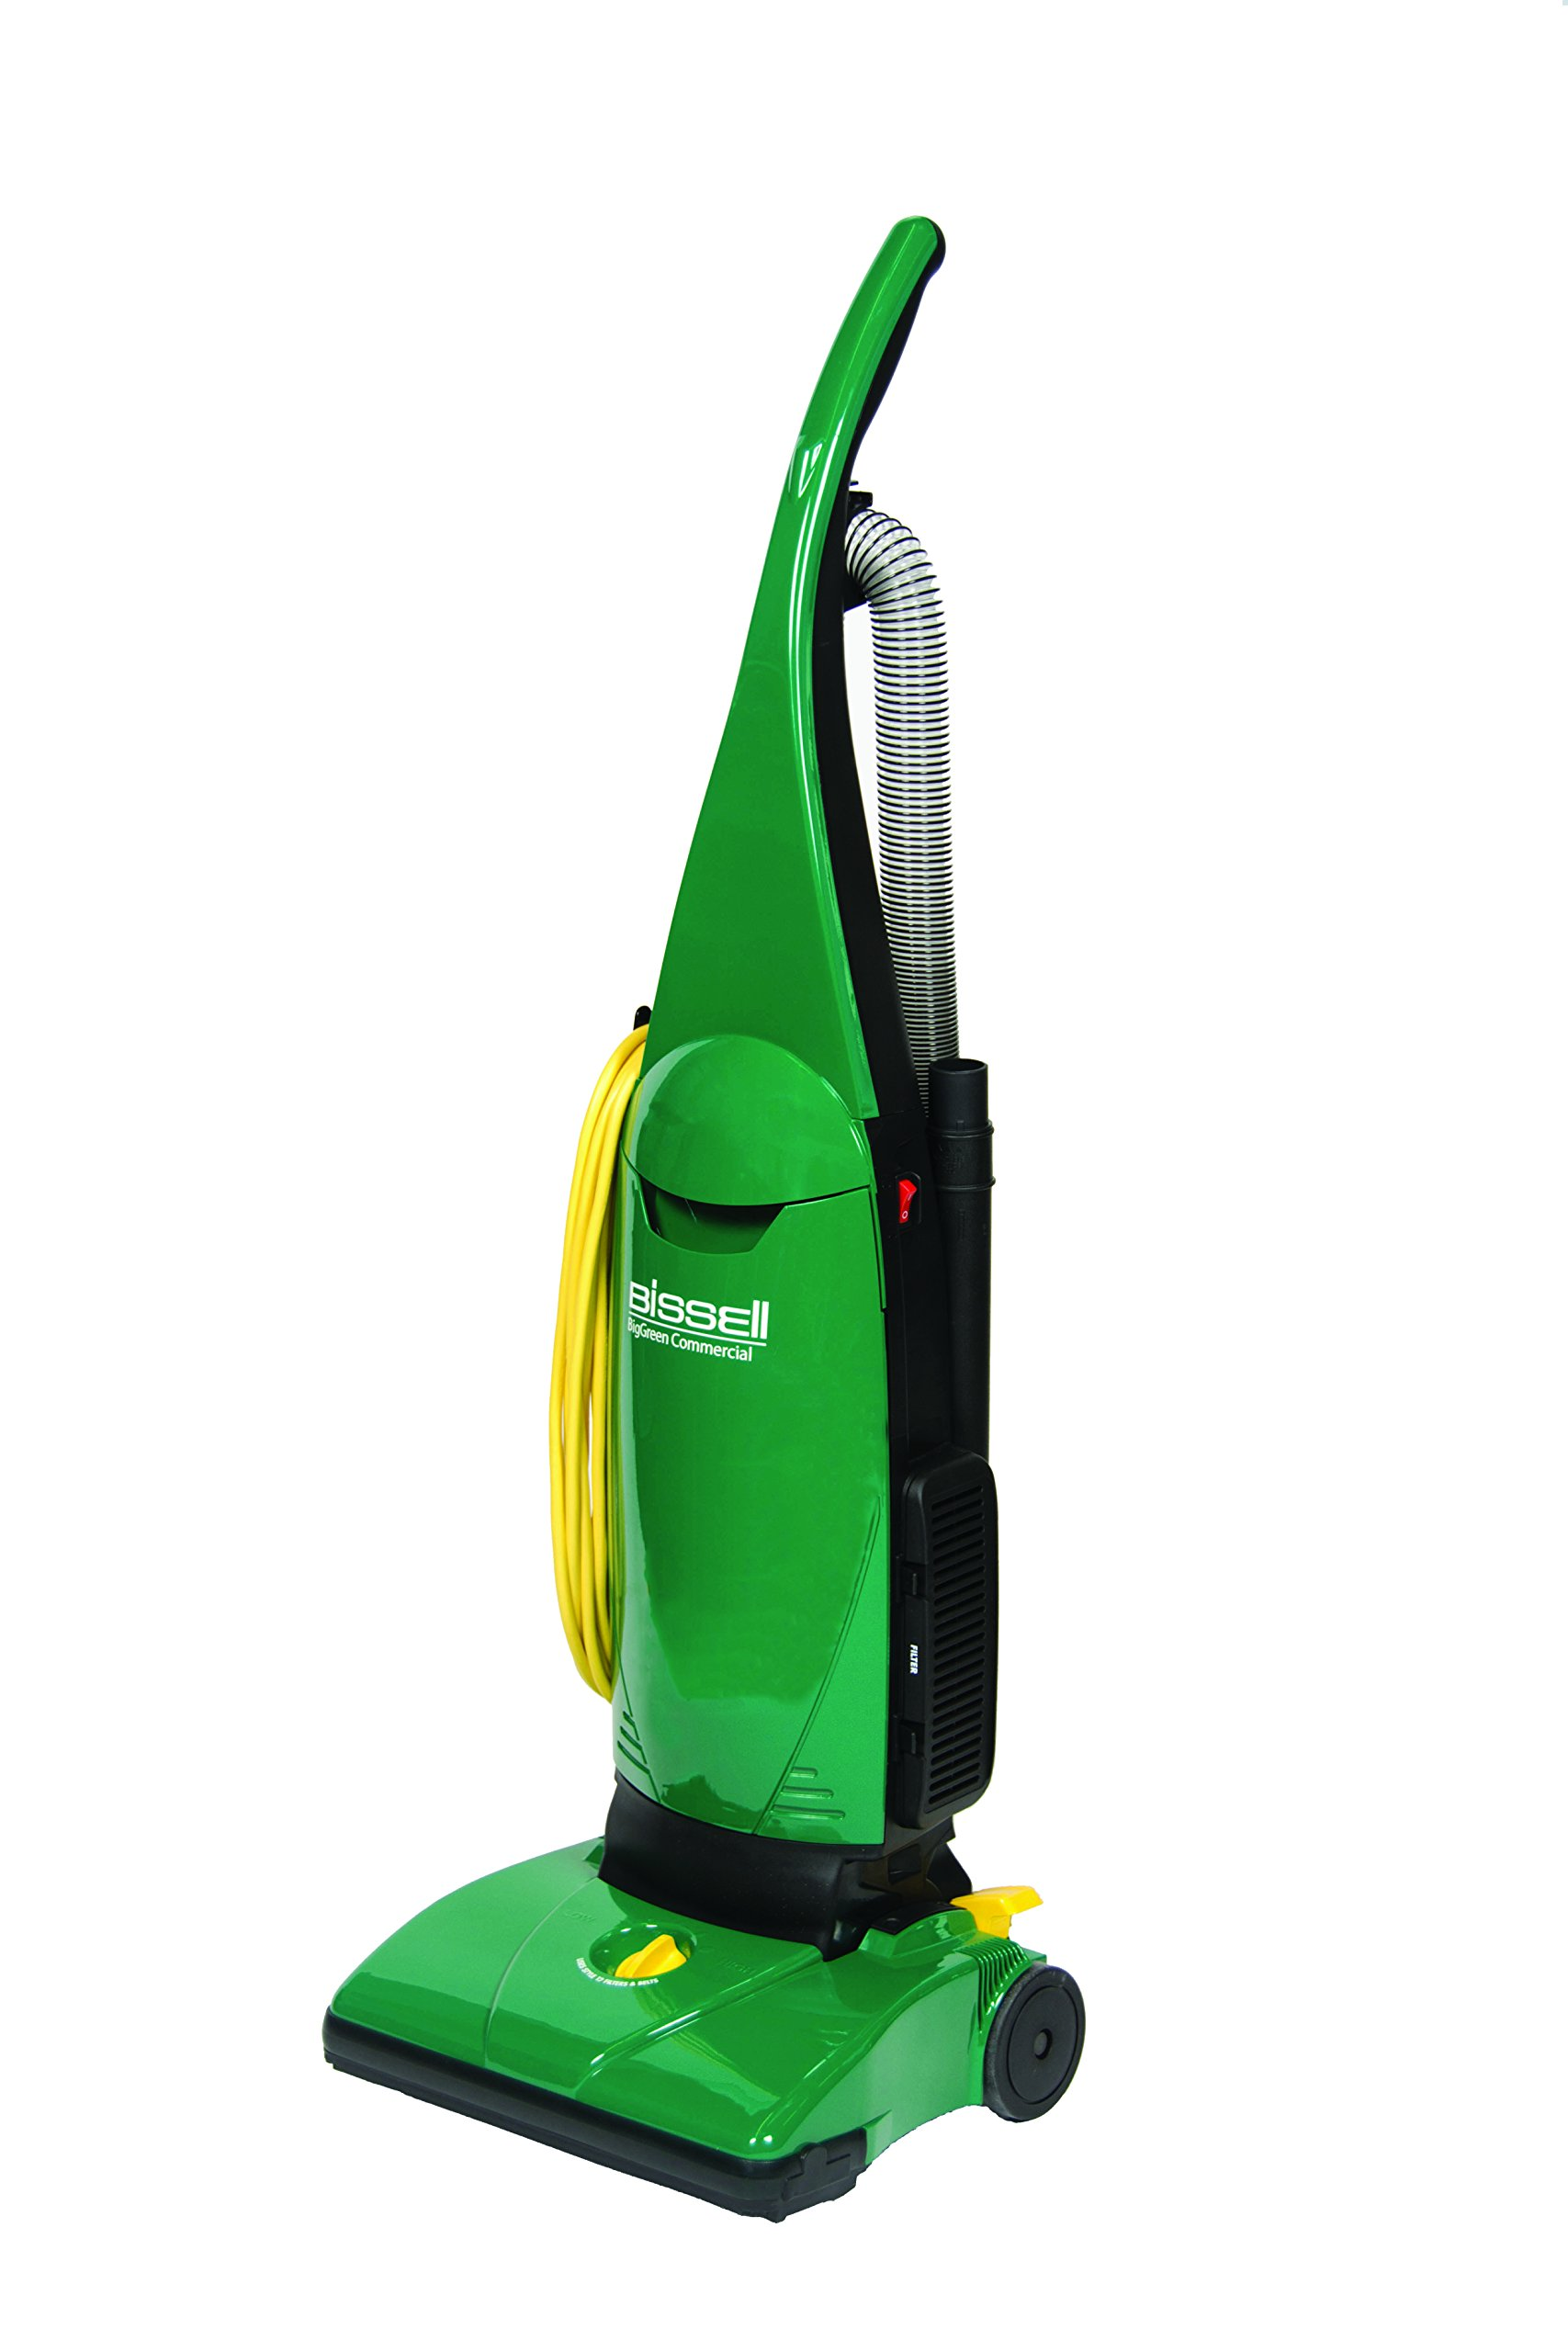 BISSELL BigGreen Commercial PowerForce Bagged Lightweight, Upright, Industrial, Vacuum Cleaner, BGU1451T by Bissell